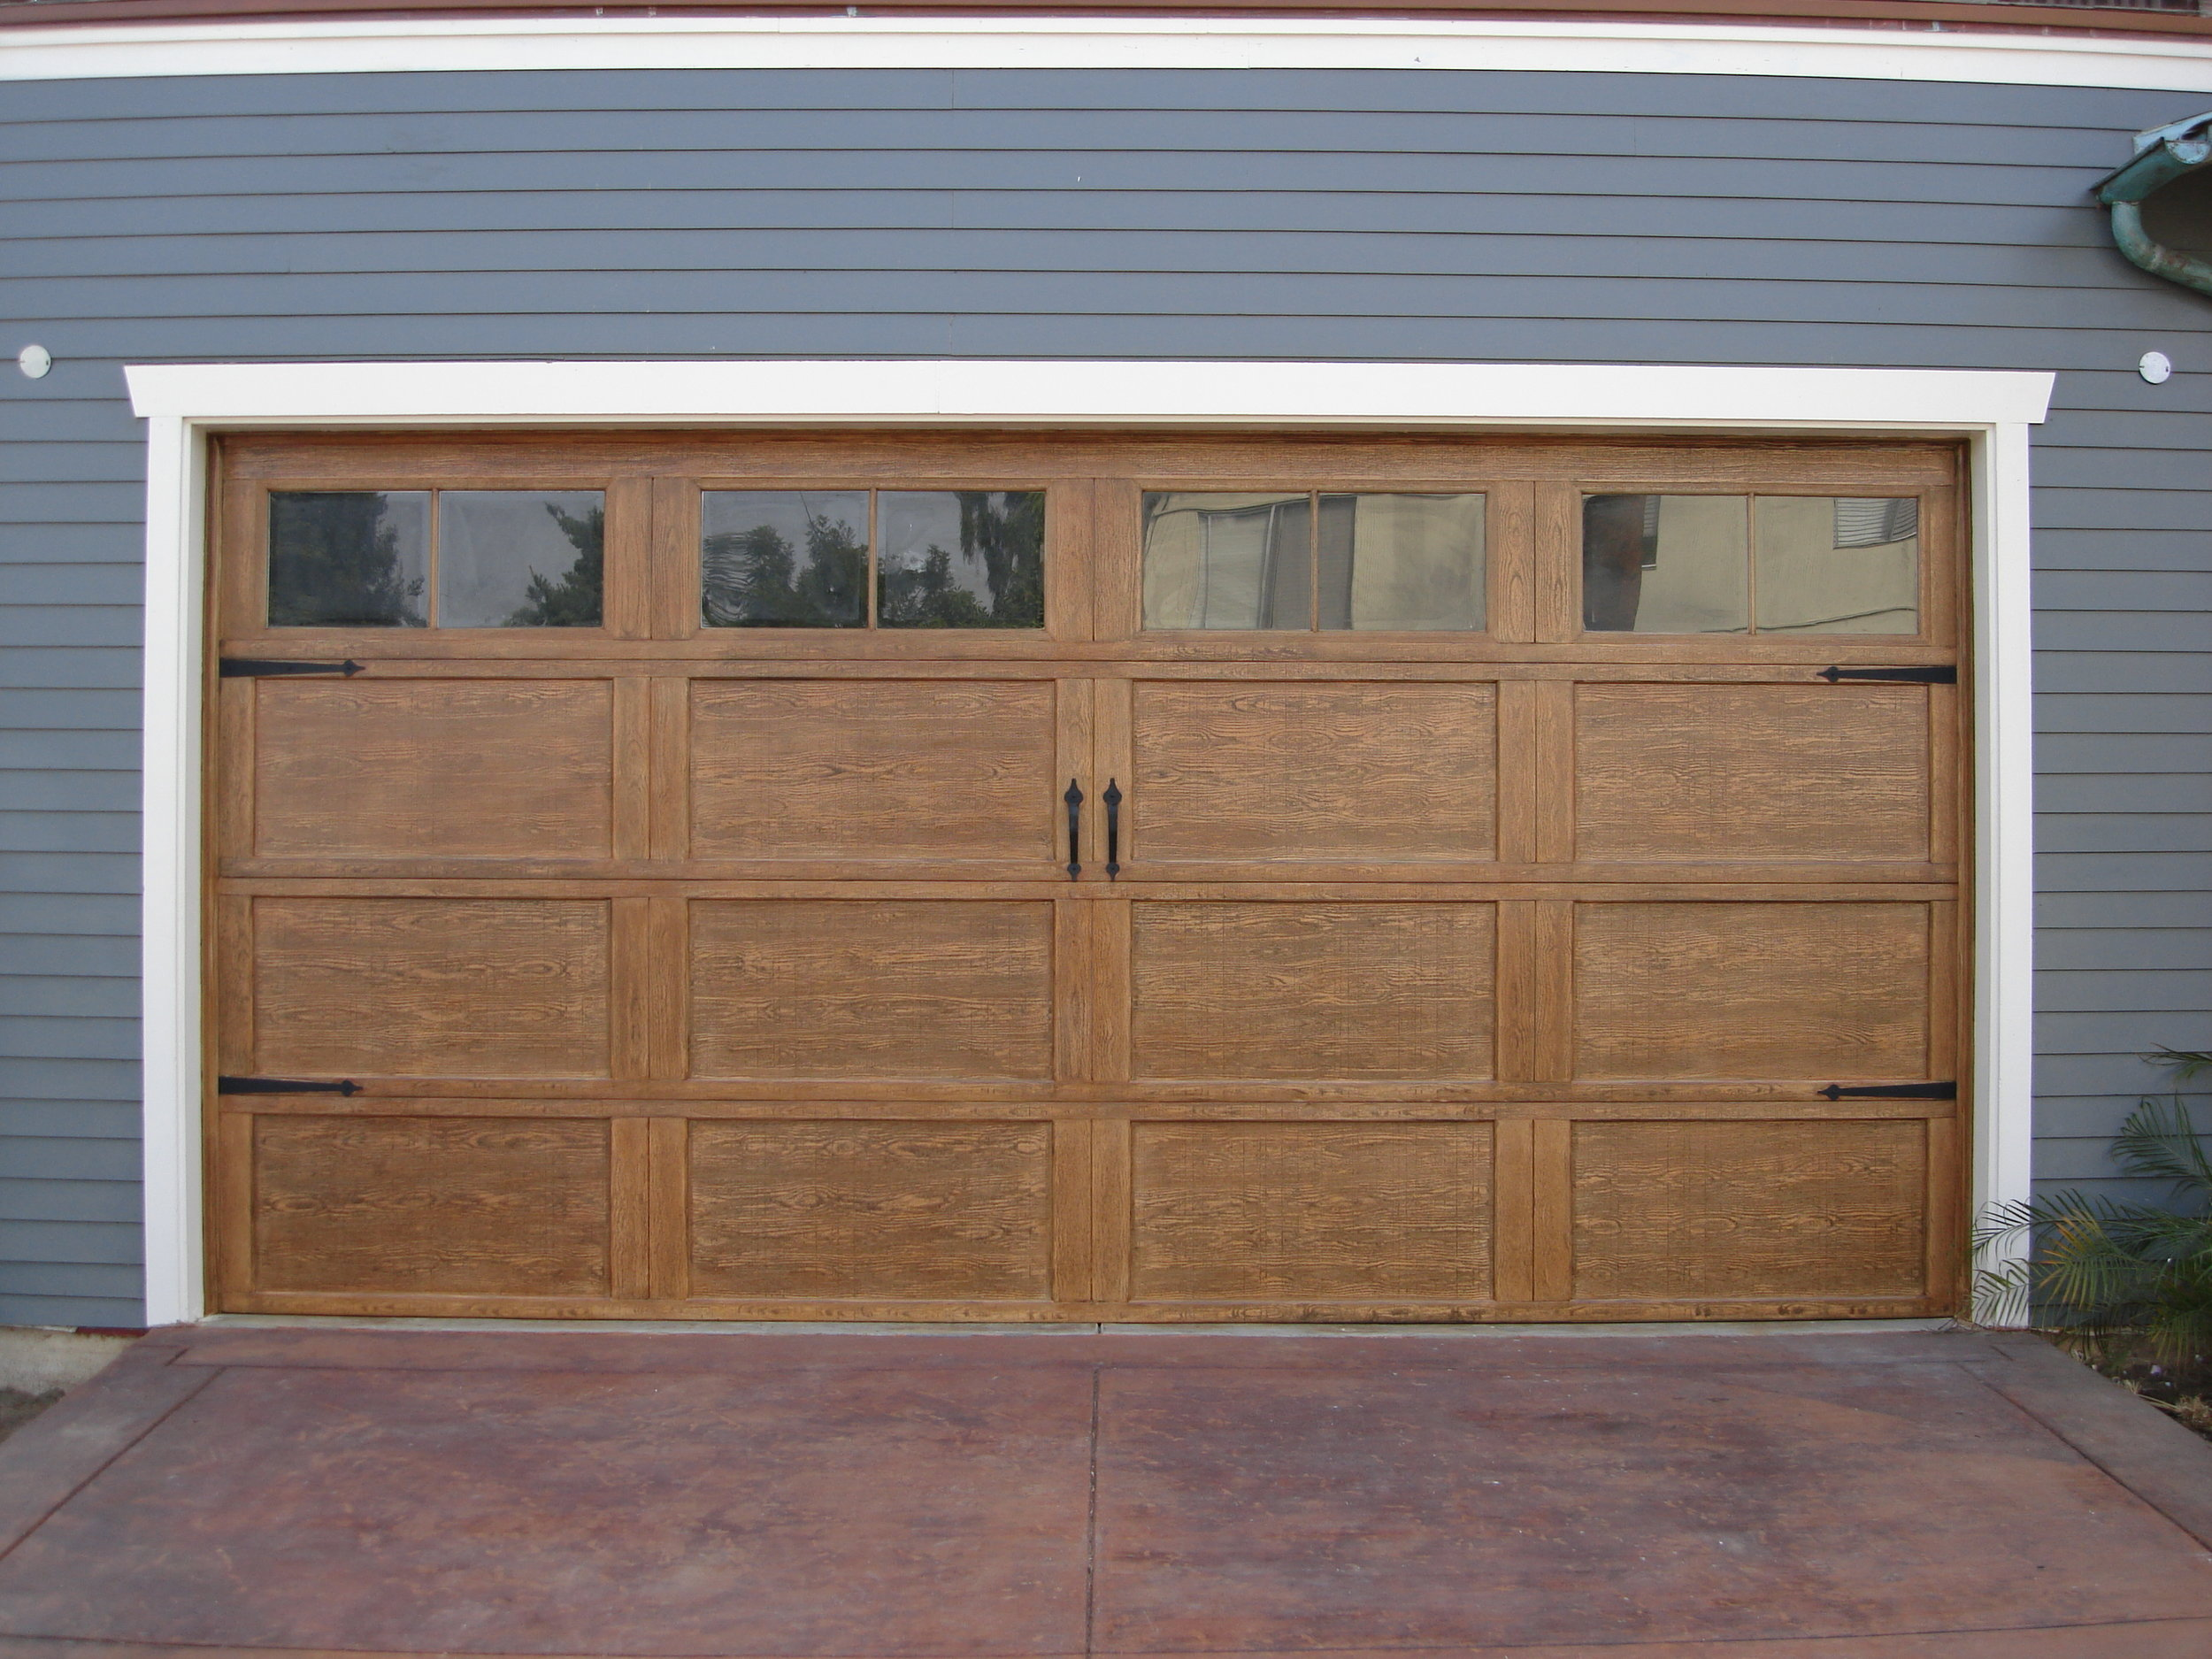 Craftsman_style_garage_door_AFTER.jpg